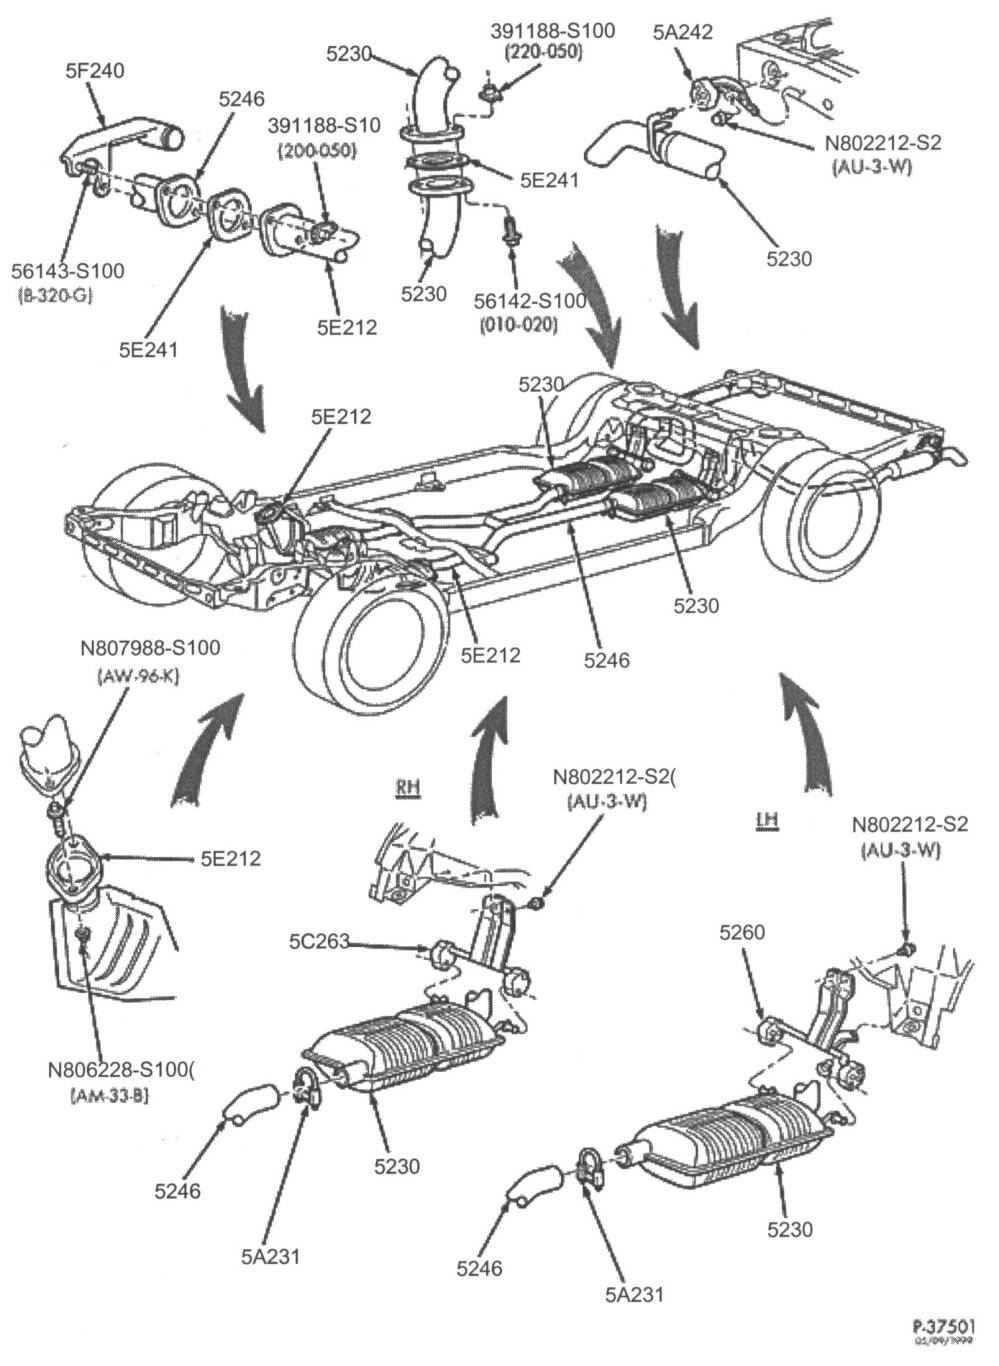 medium resolution of 1992 ford crown victoria 4 6 engine diagram wiring diagram libraries 1992 ford crown victoria 4 6 engine diagram